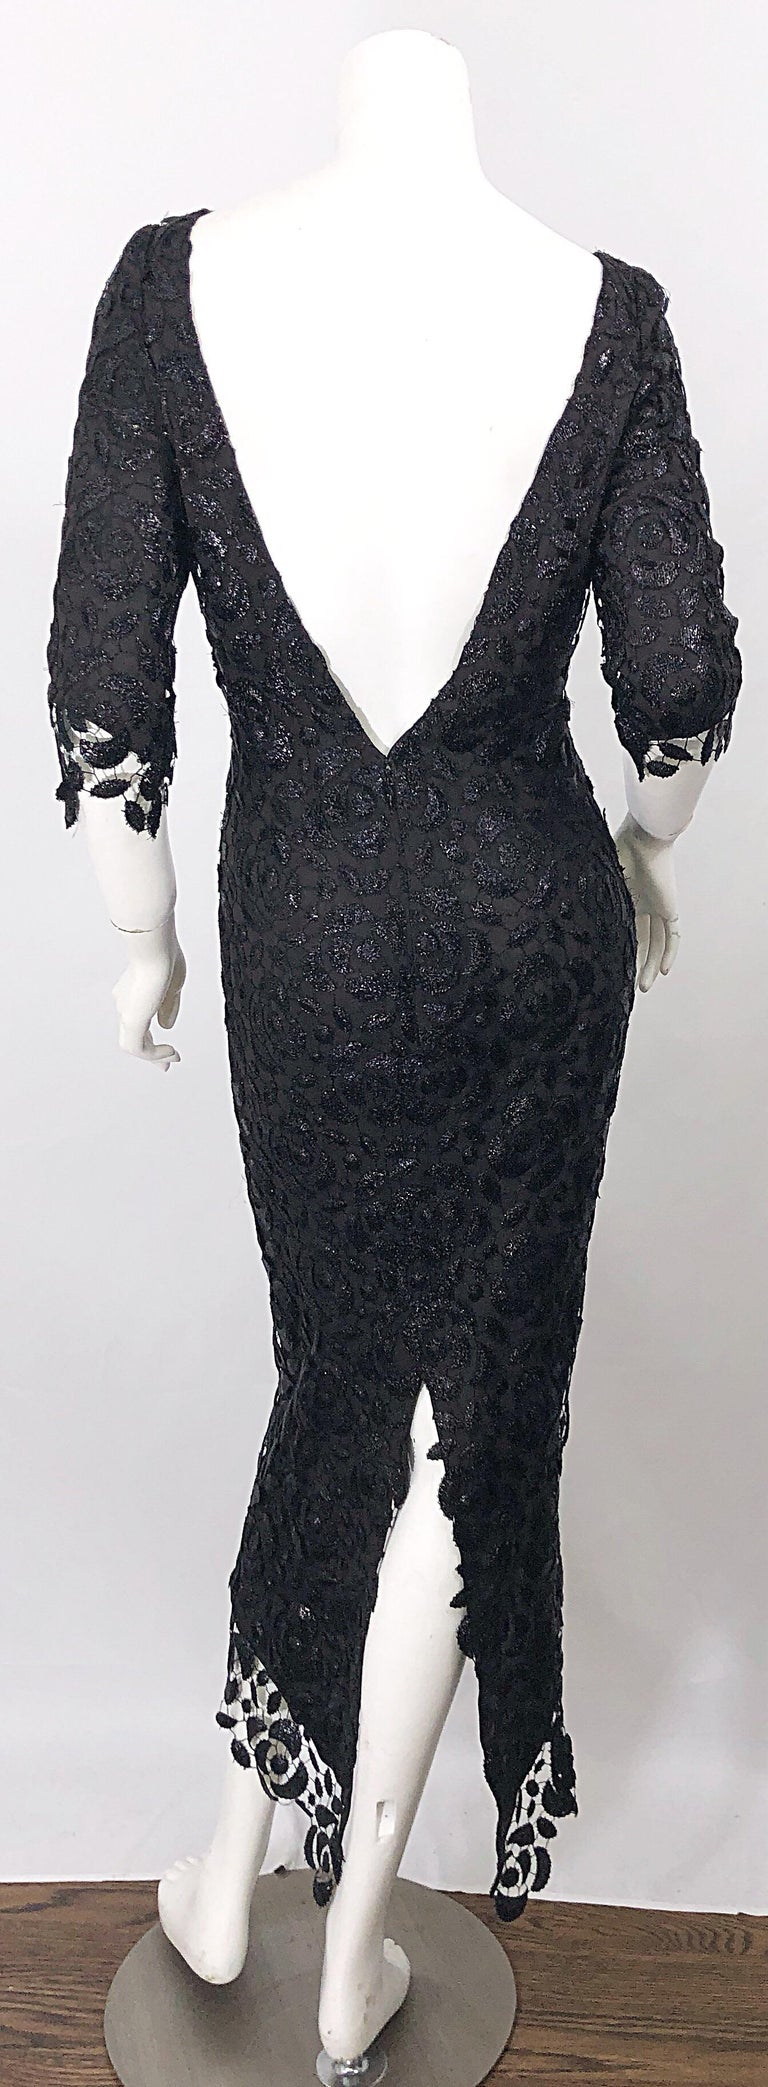 Stunning $10k Vintage Halston Black 3/4 Sleeves Silk Lace Crochet Sz 4 6 Dress In New Condition For Sale In Chicago, IL